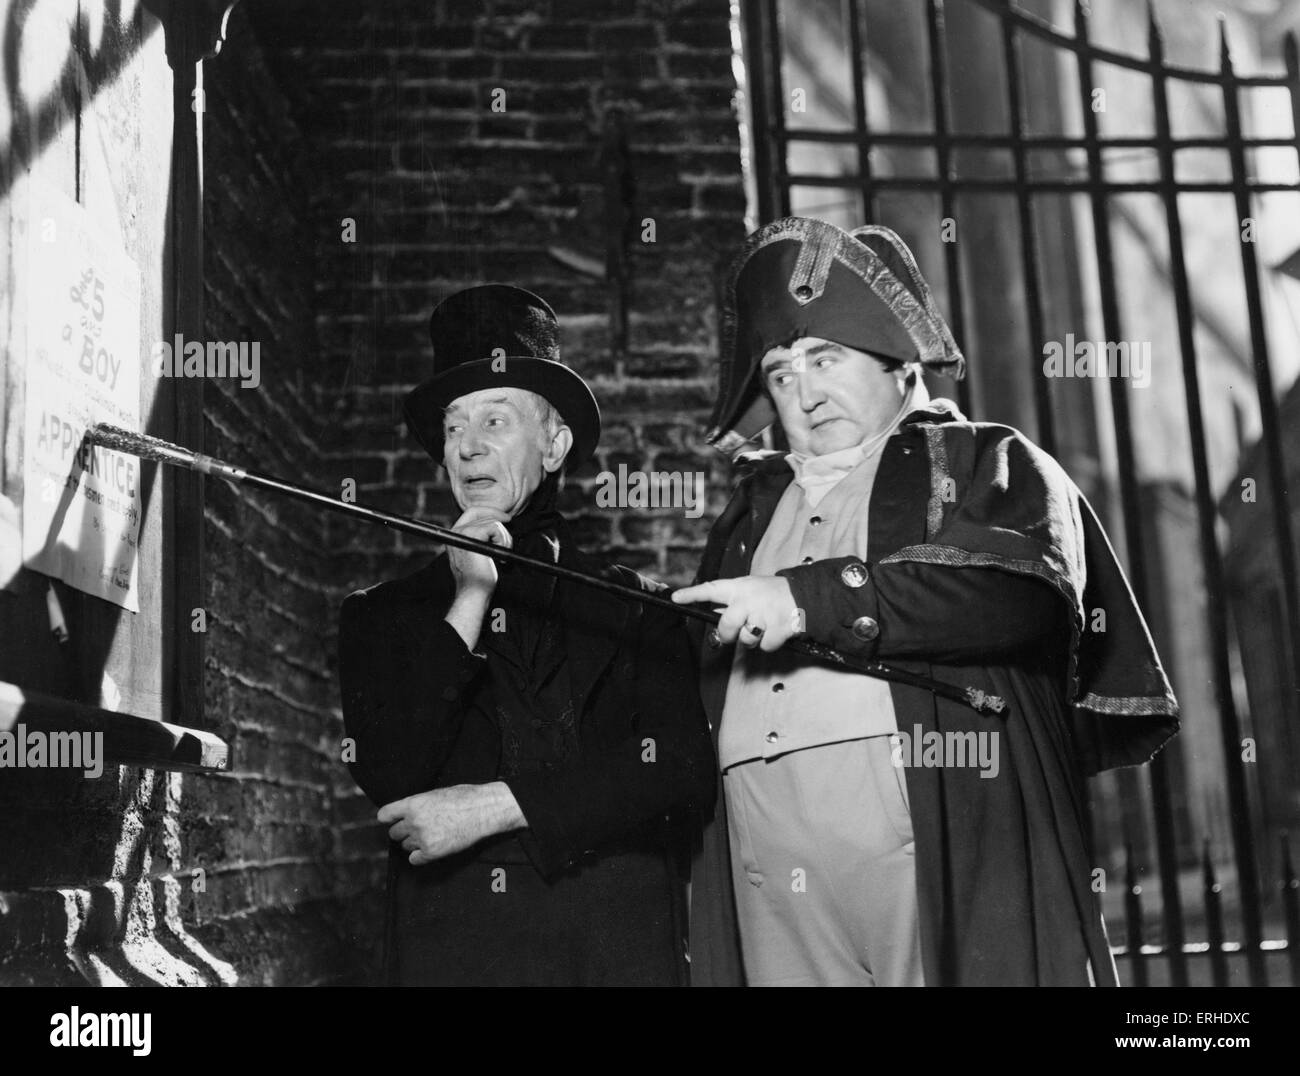 Oliver Twist. Film still from 1948 Rank Film production of Charles Dickens ' book. British novelist, 7 February - Stock Image